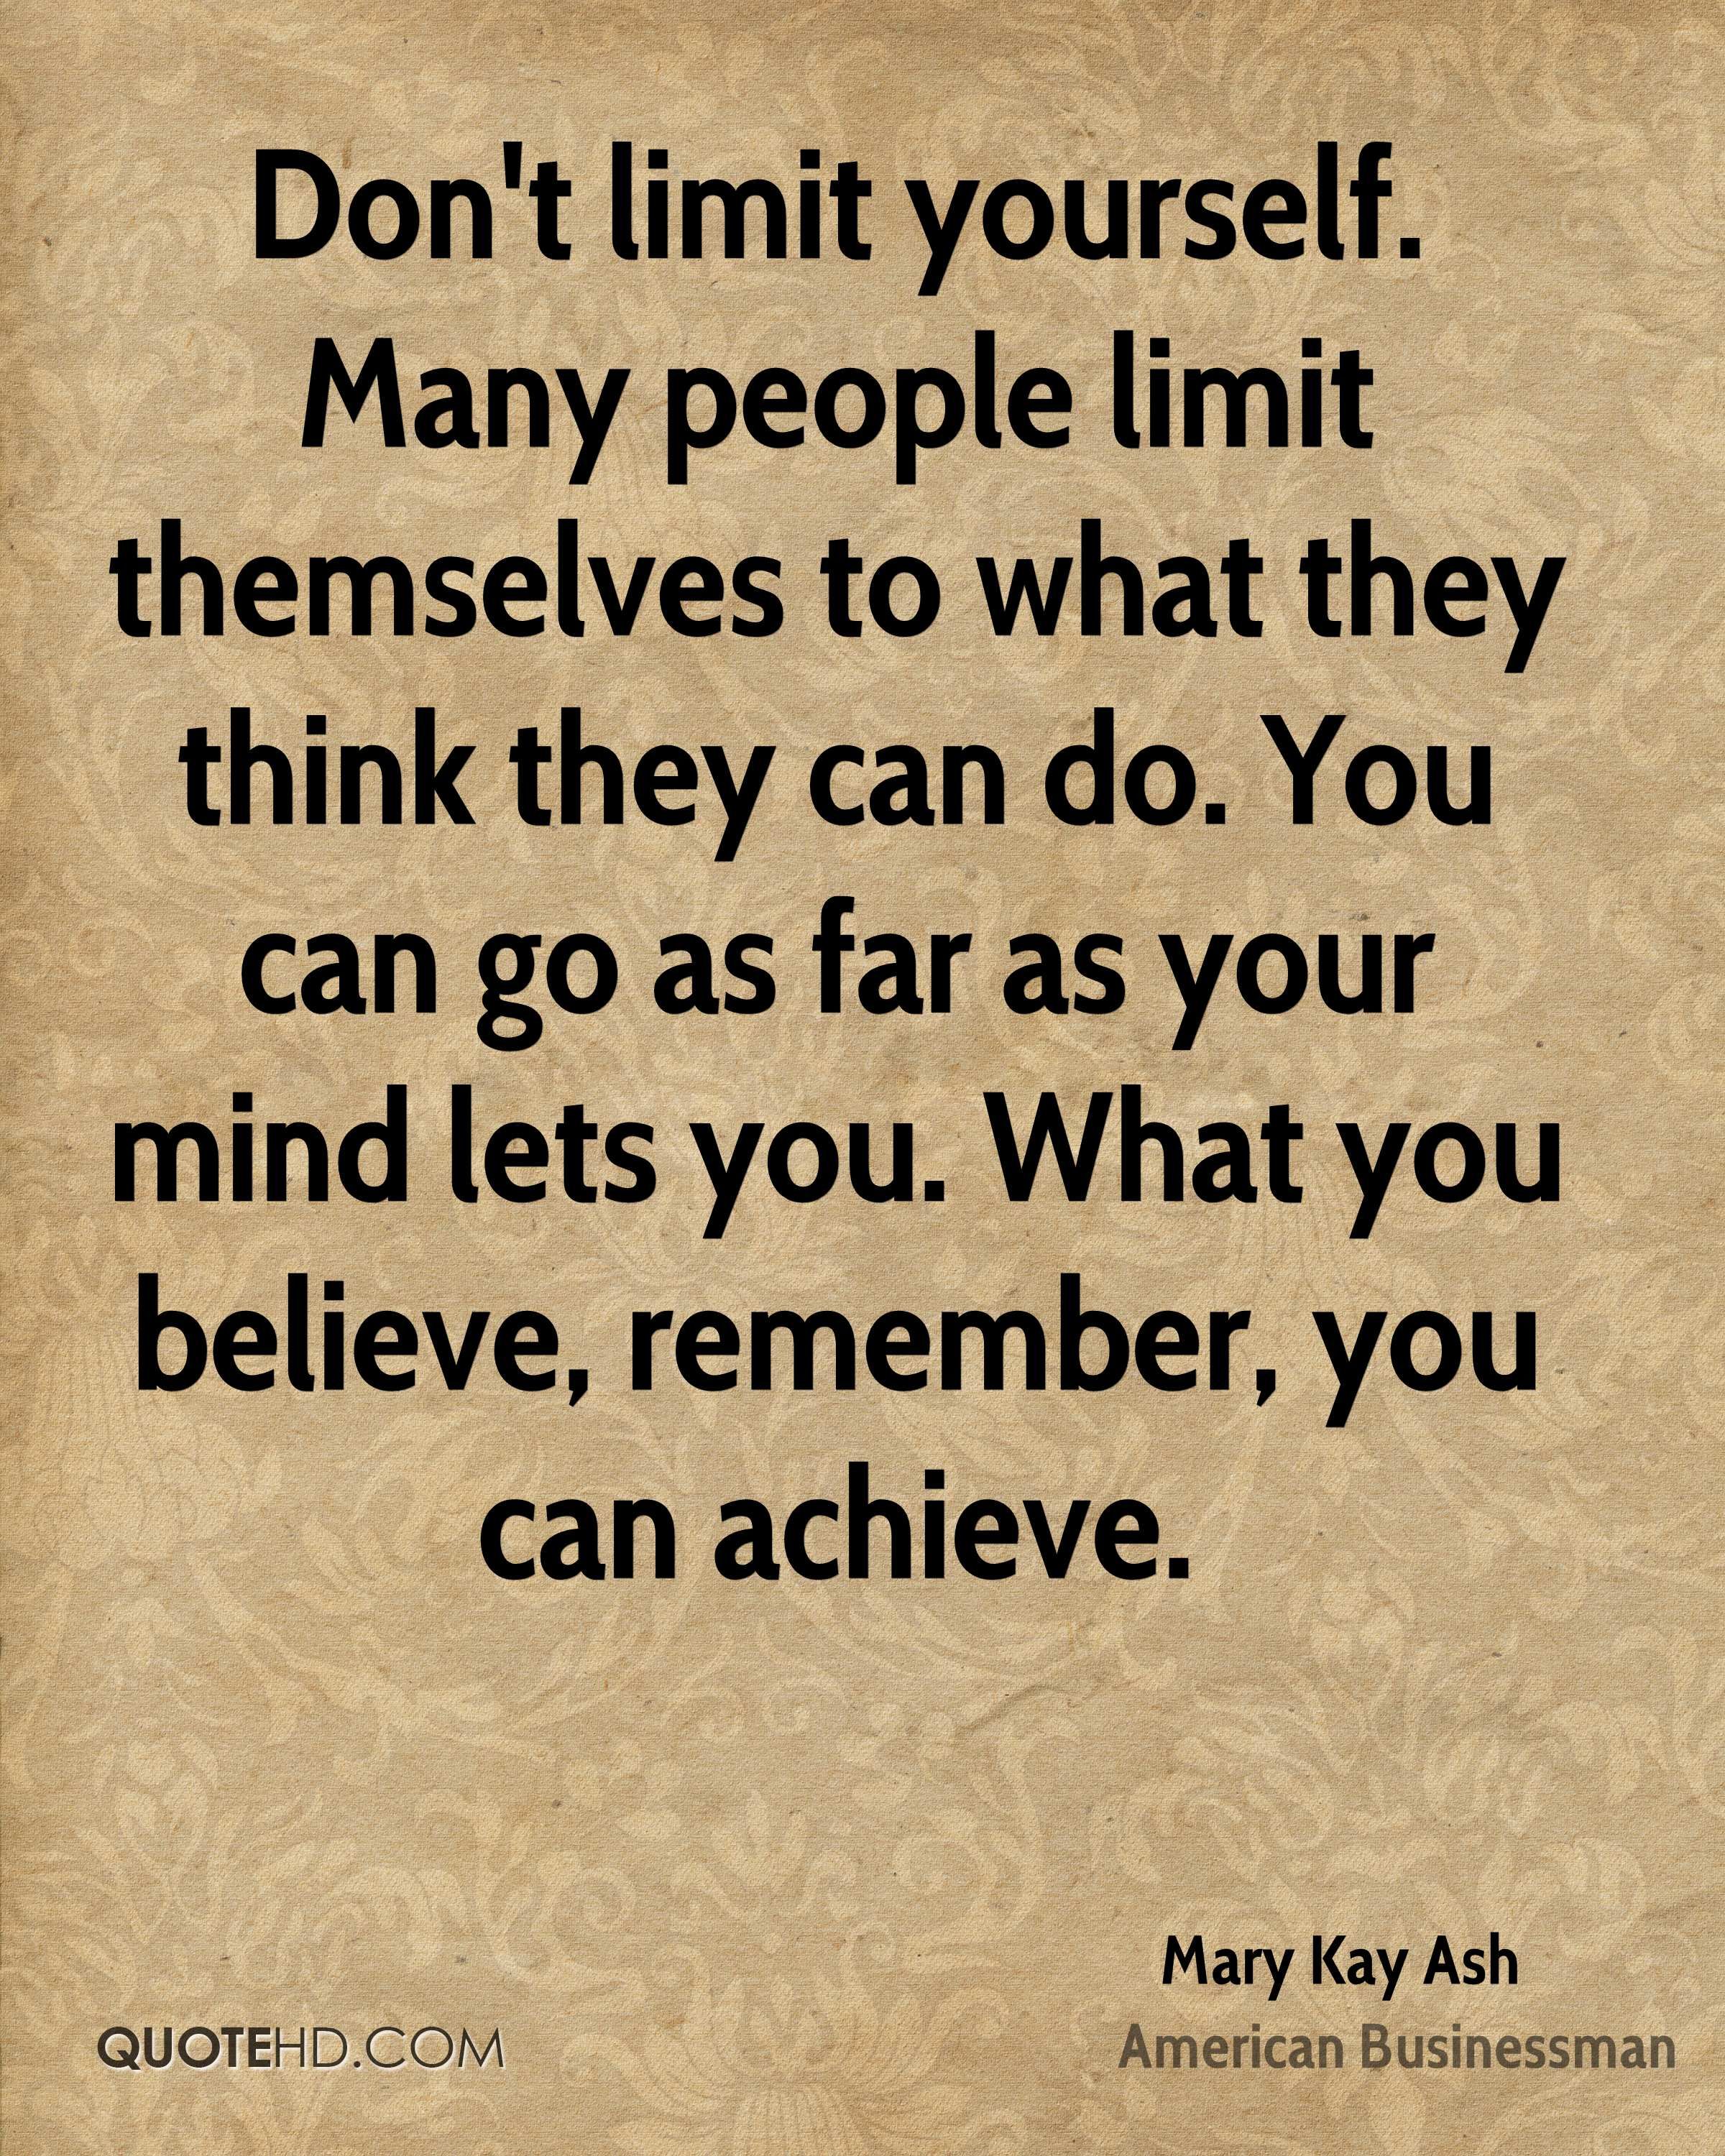 Don't limit yourself. Many people limit themselves to what they think they can do. You can go as far as your mind lets you. What you believe, remember, you can achieve.